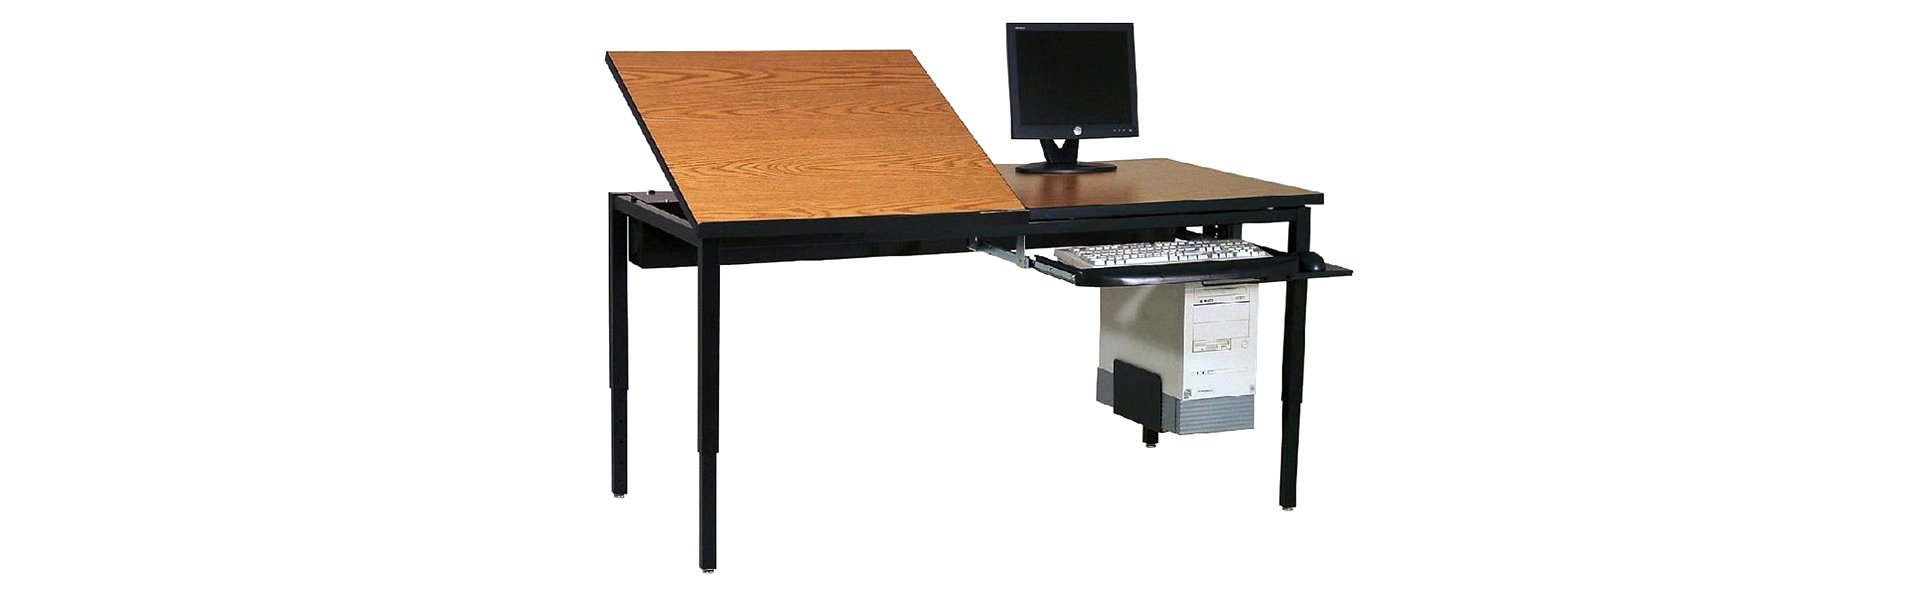 Drafting Table with Computer Accessories